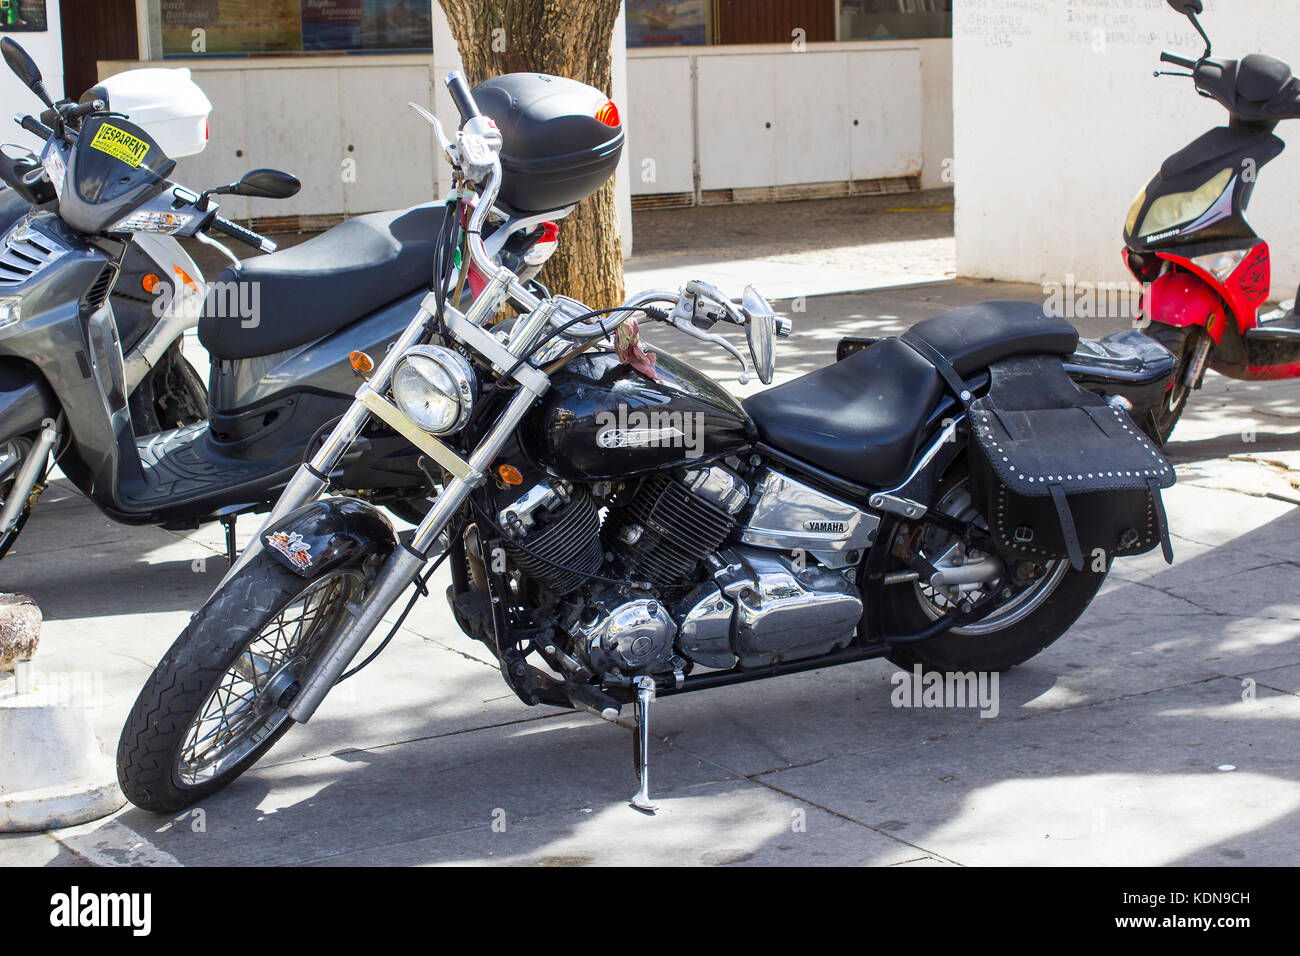 A japanese made Yamaha Dragstar motor cycle parked in a supermarket car park in Albuferia in Portugal - Stock Image